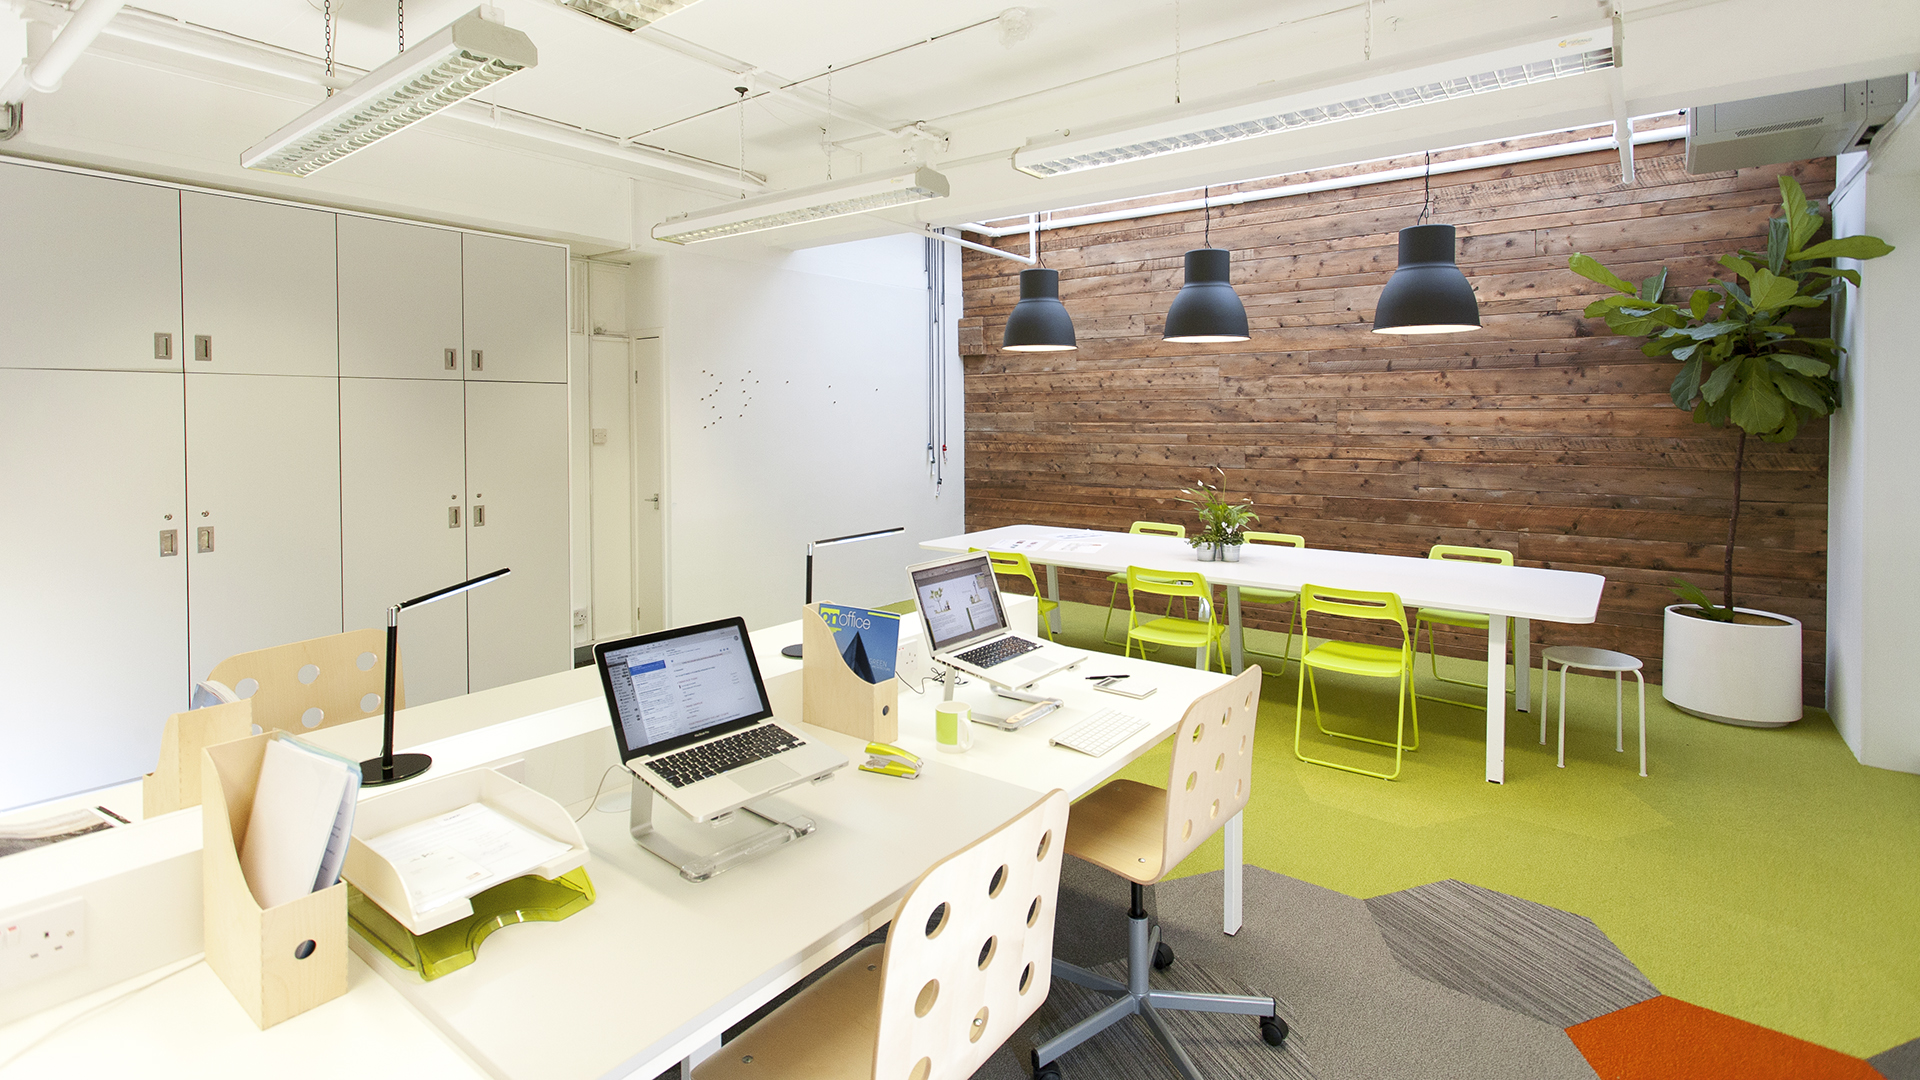 Workplace Design For Calm Ministry Of Calm Design For